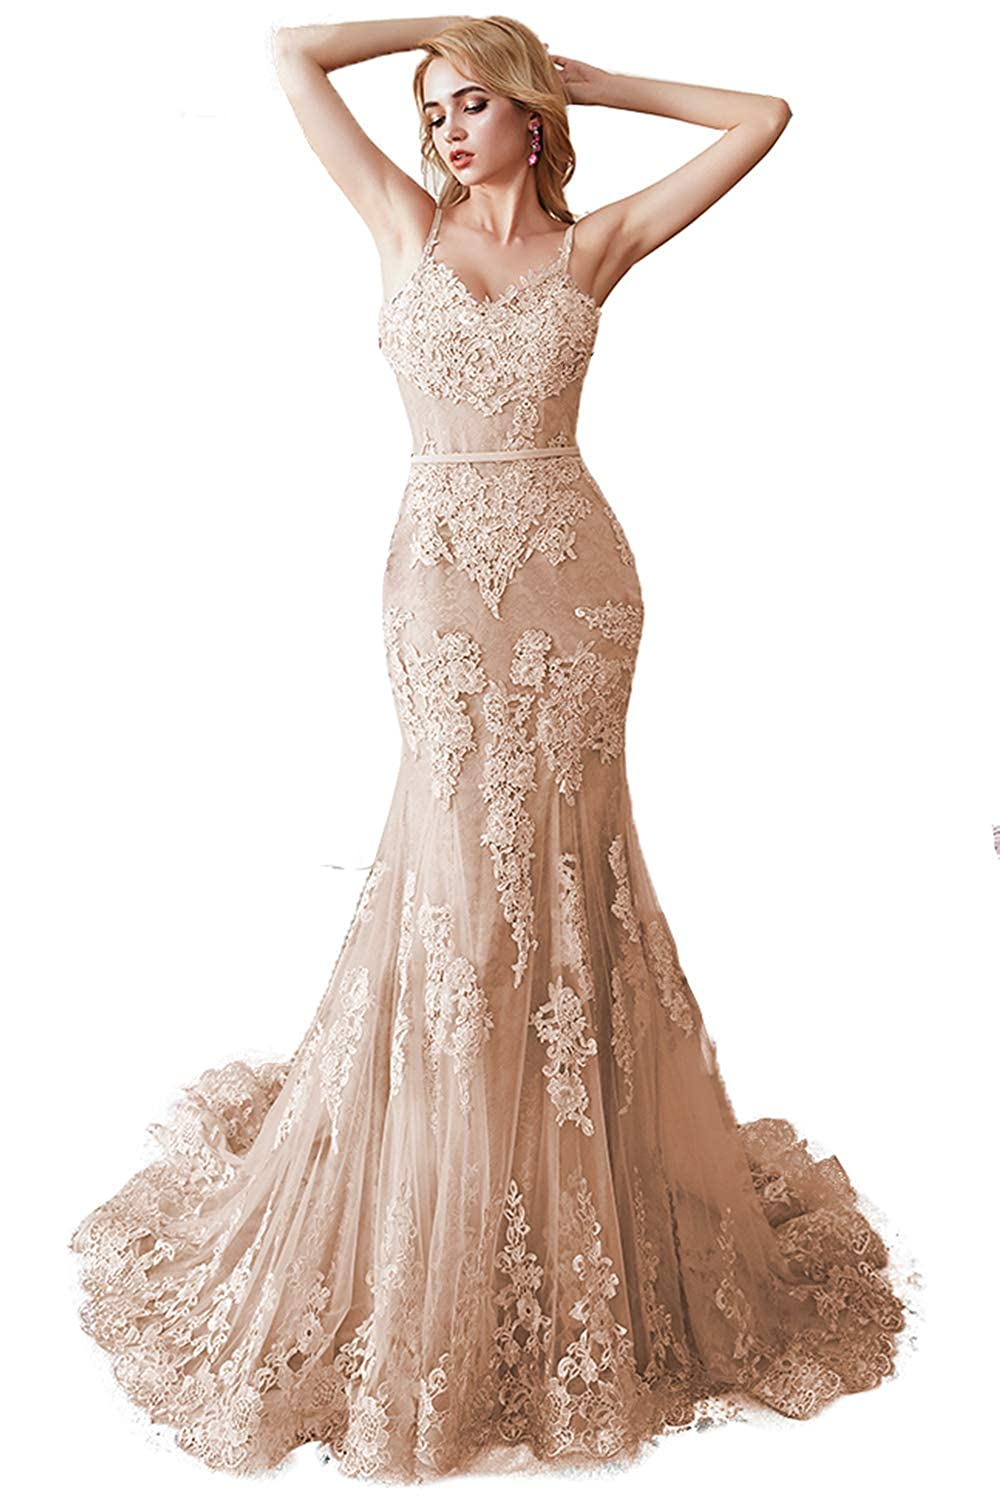 Champagne Promworld Women's Spaghetti Strap Lace Applique Mermaid Prom Dress Tulle Formal Dress Evening Gowns